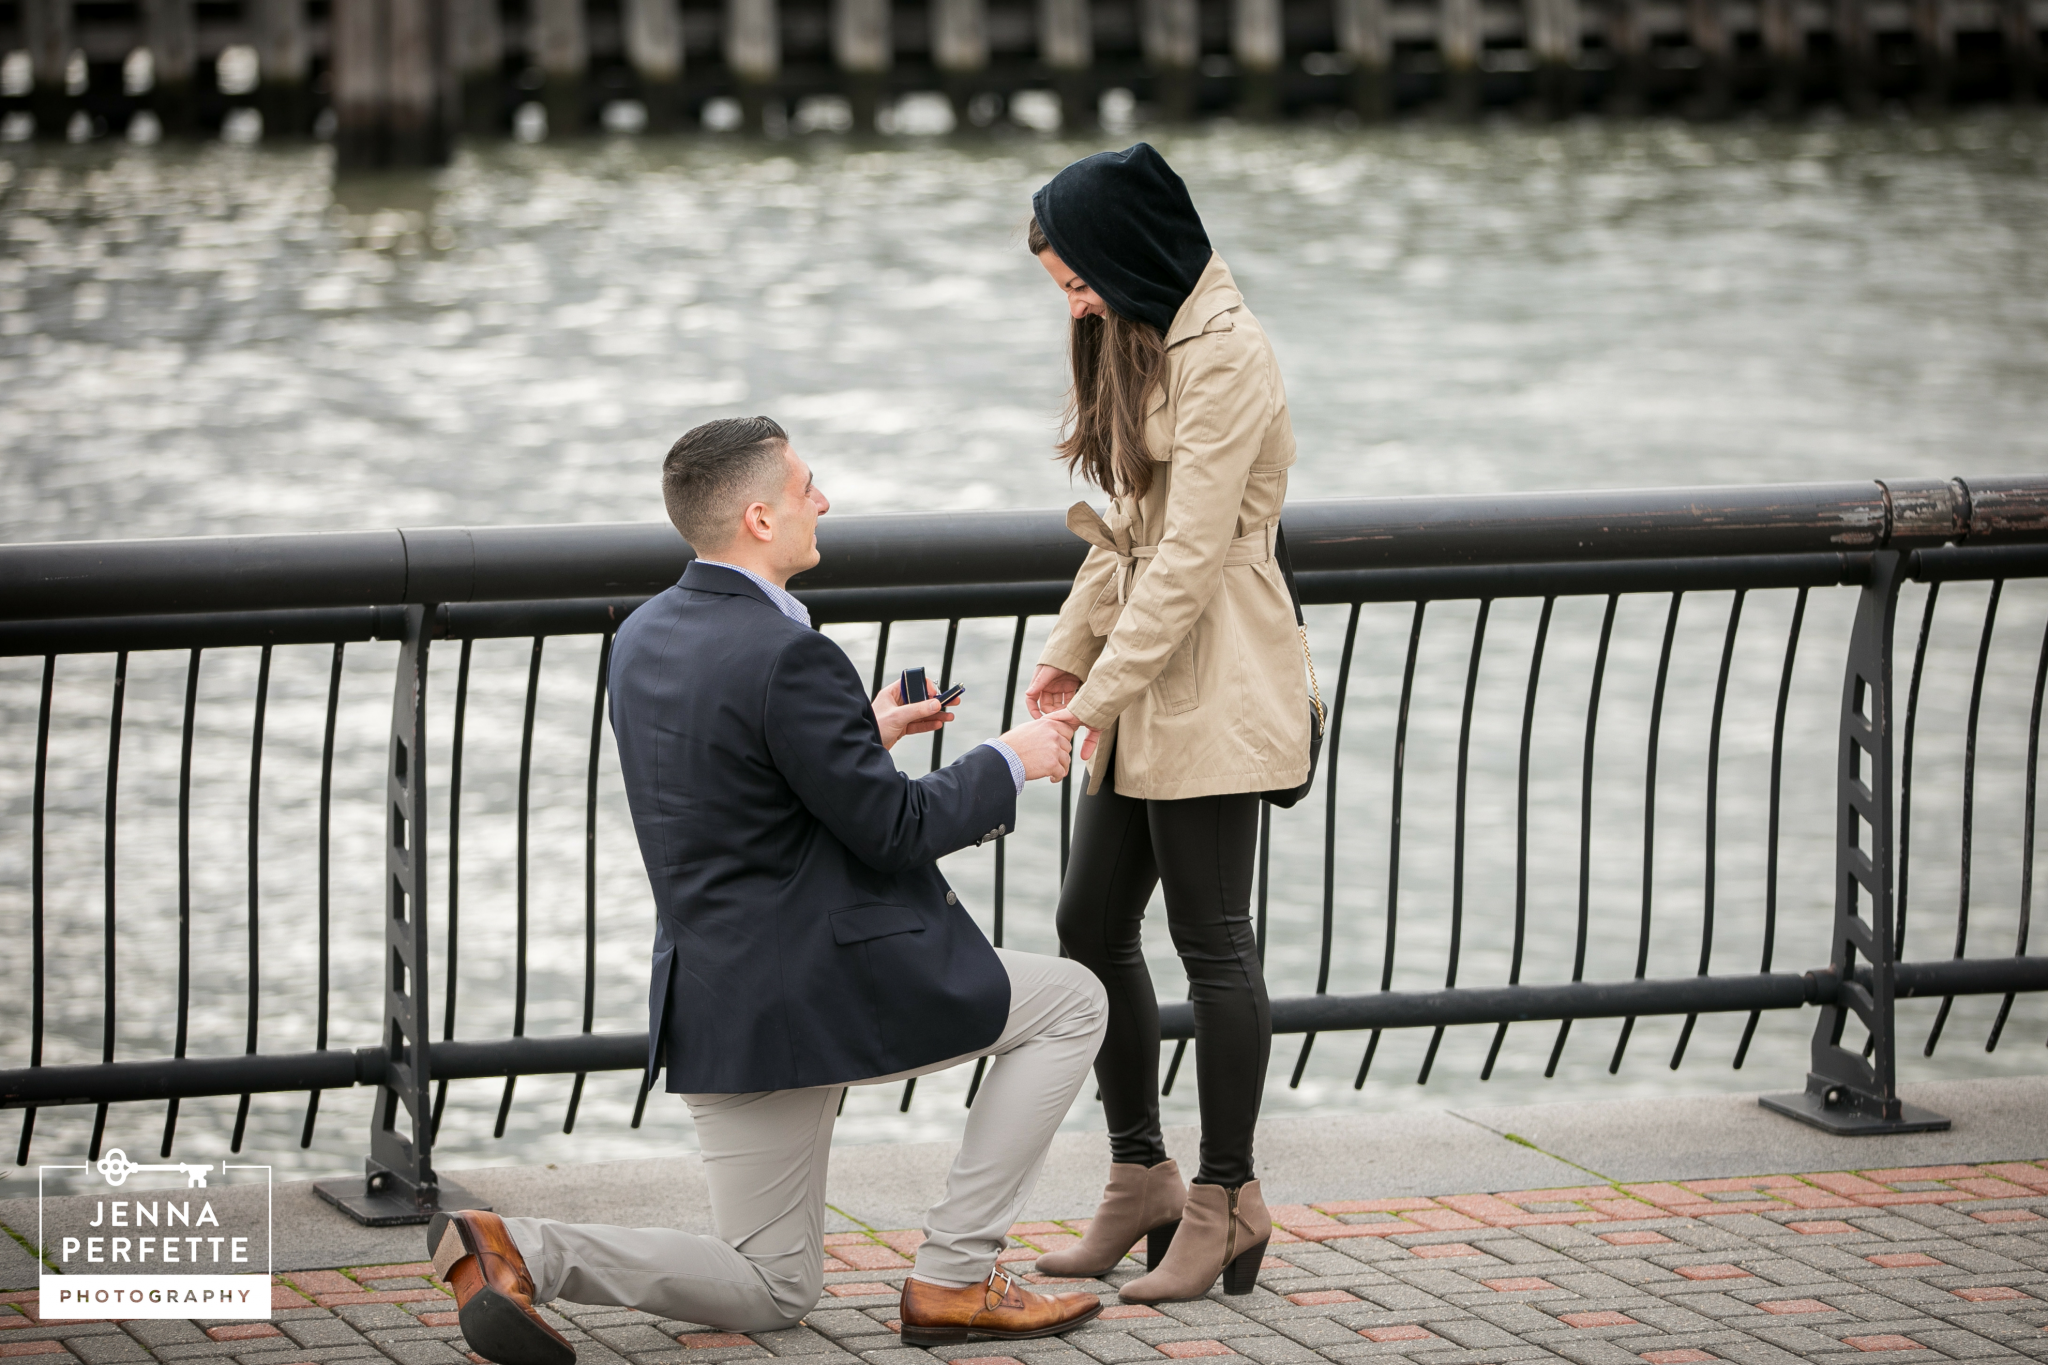 Hoboken Waterfront Proposal Photos Best New Jersey Photographer (3)